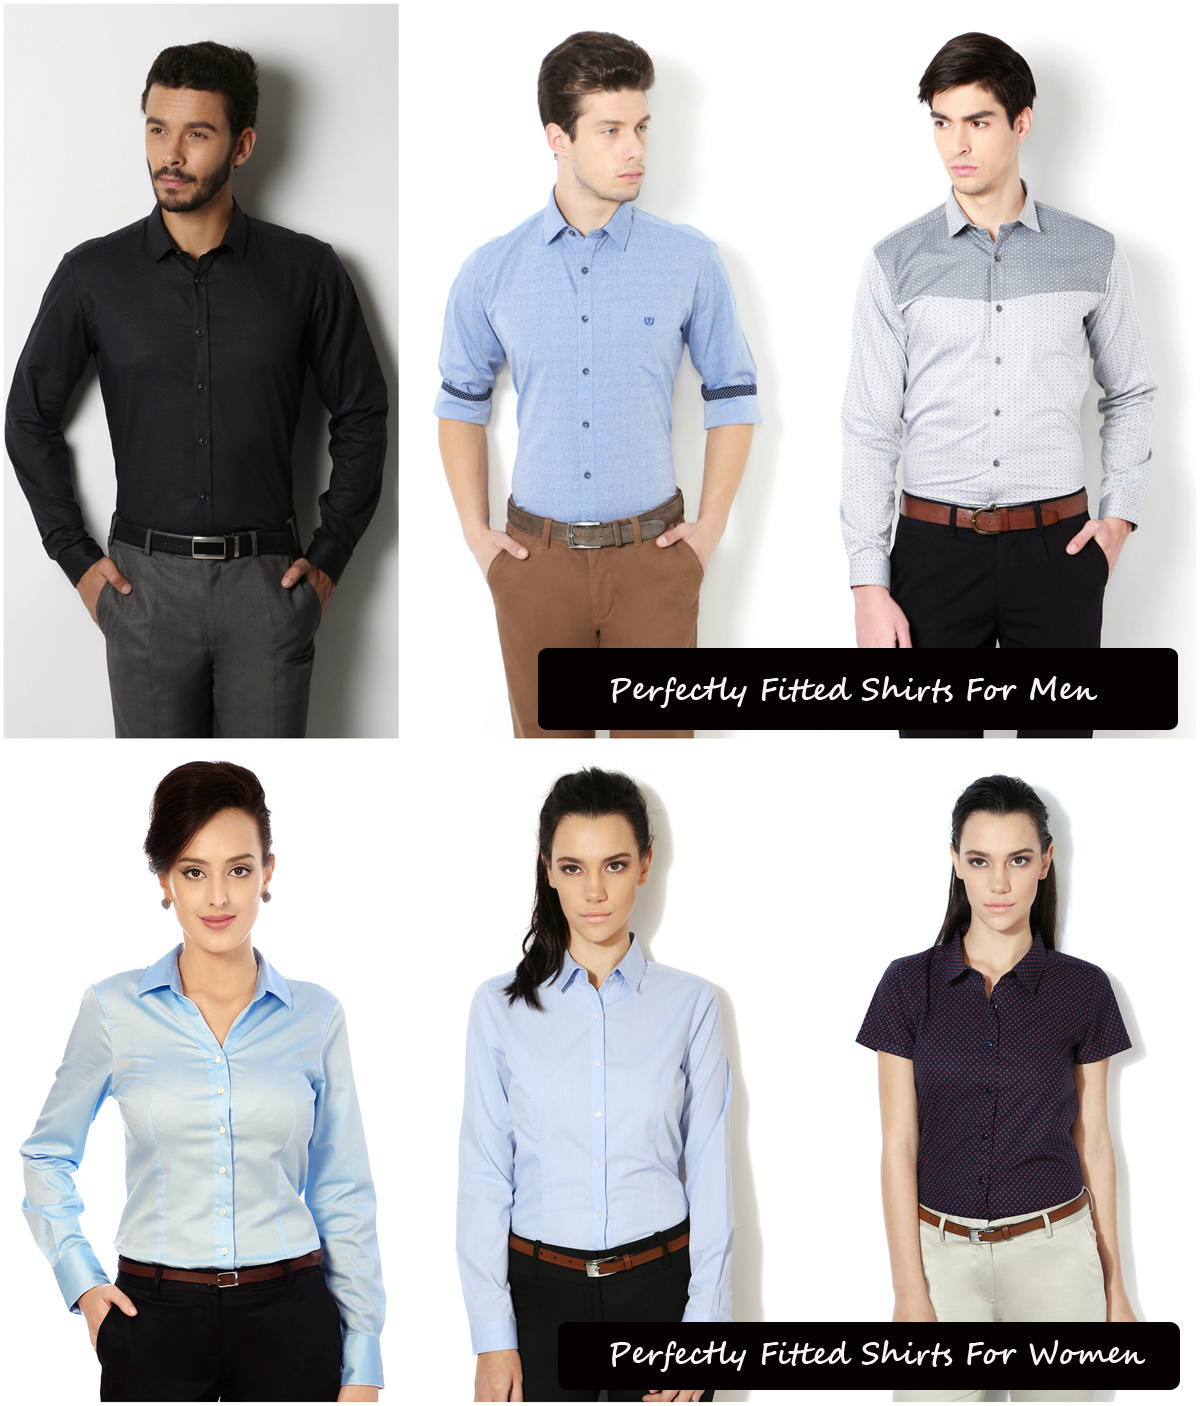 perfectly-fitted-shirts